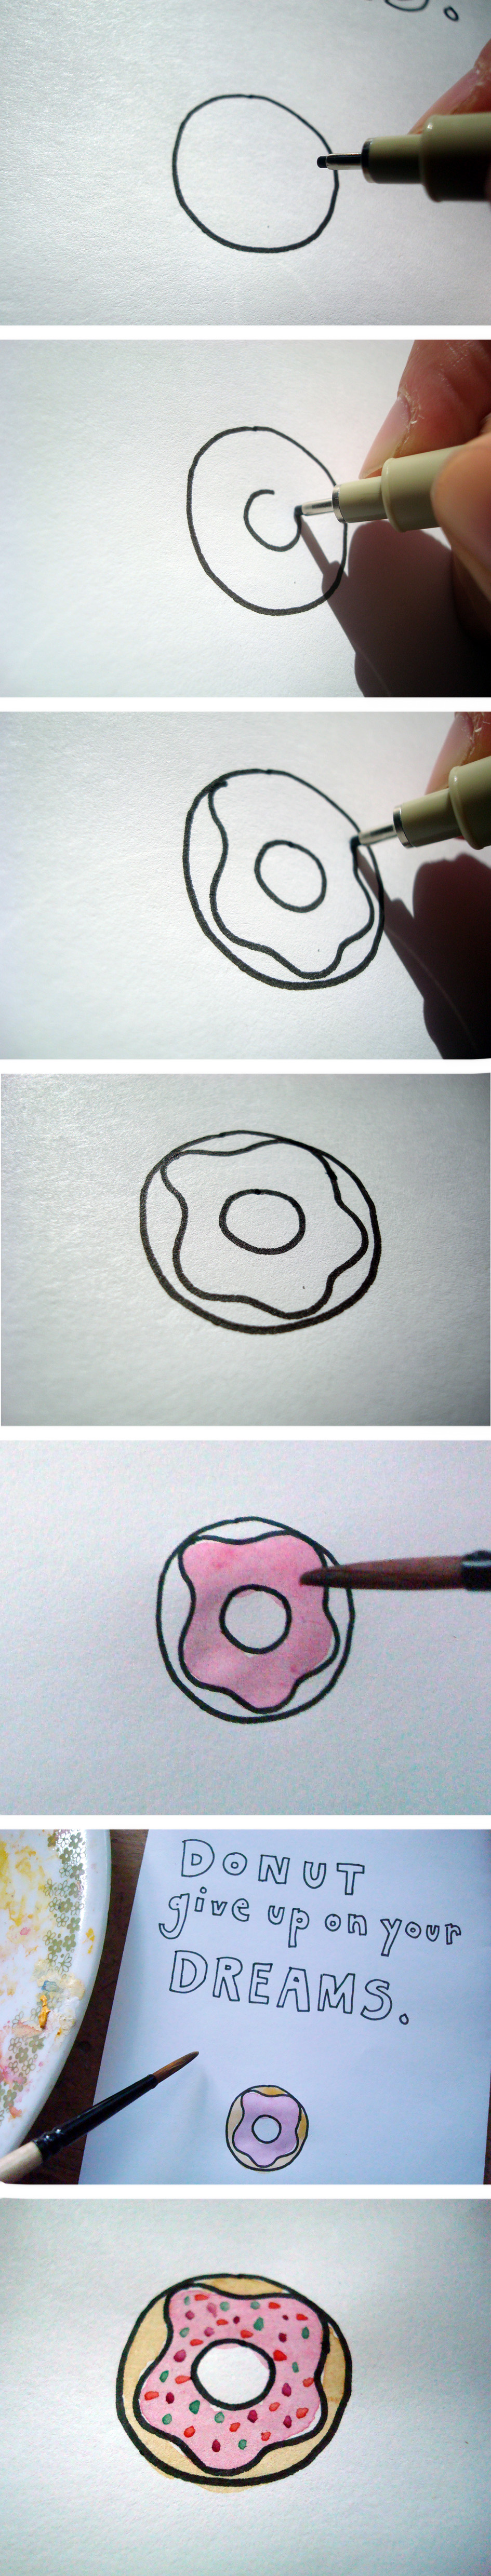 donut drawing tutorial